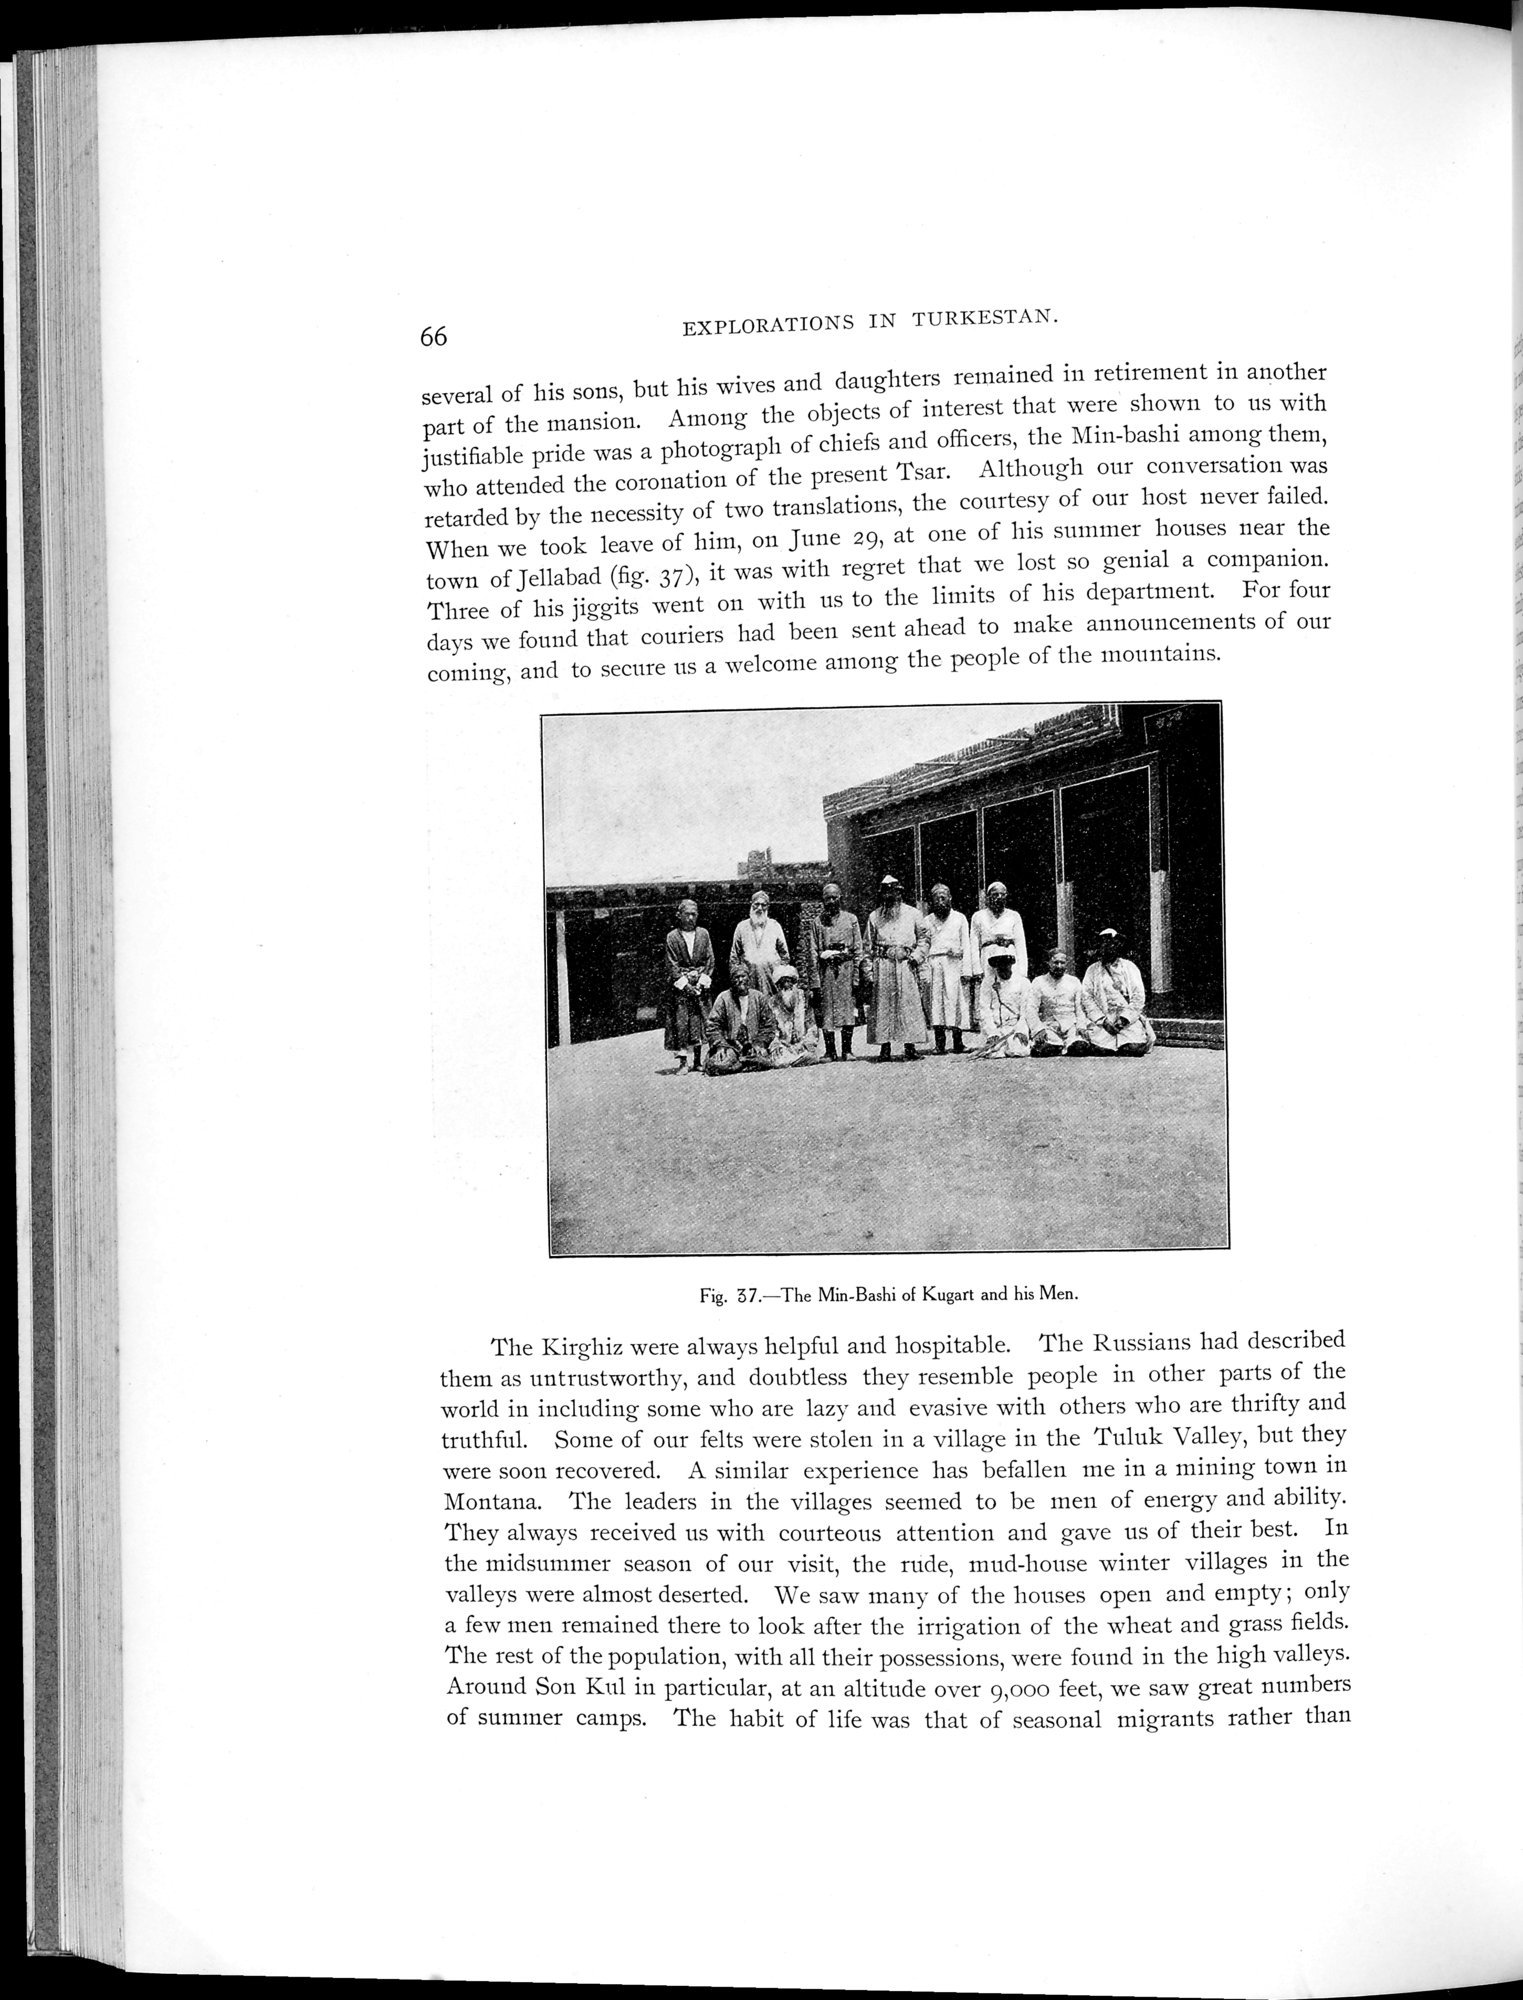 Explorations in Turkestan 1903 : vol.1 / Page 90 (Grayscale High Resolution Image)